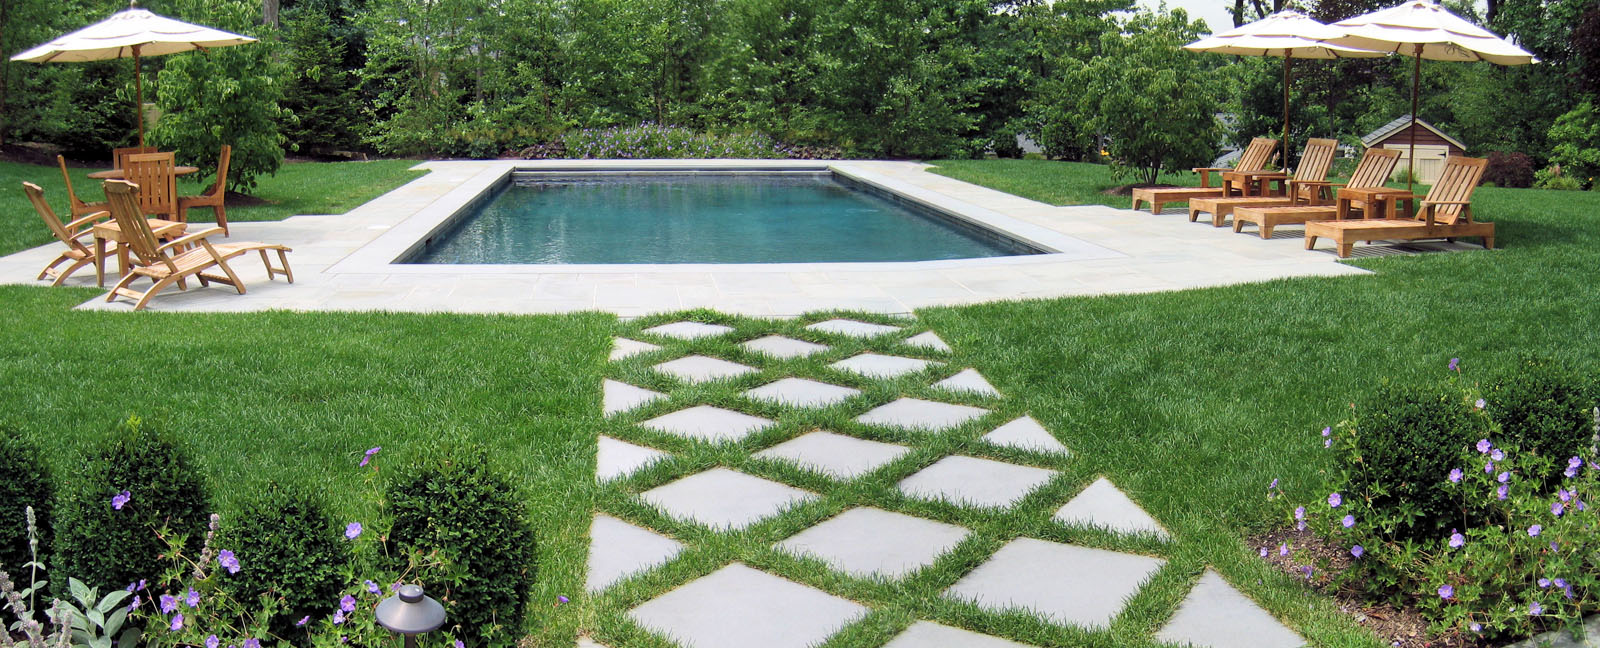 Garden design ideas low maintenance - Pool Design Portfolio Serving North Jersey Clc Landscape Design